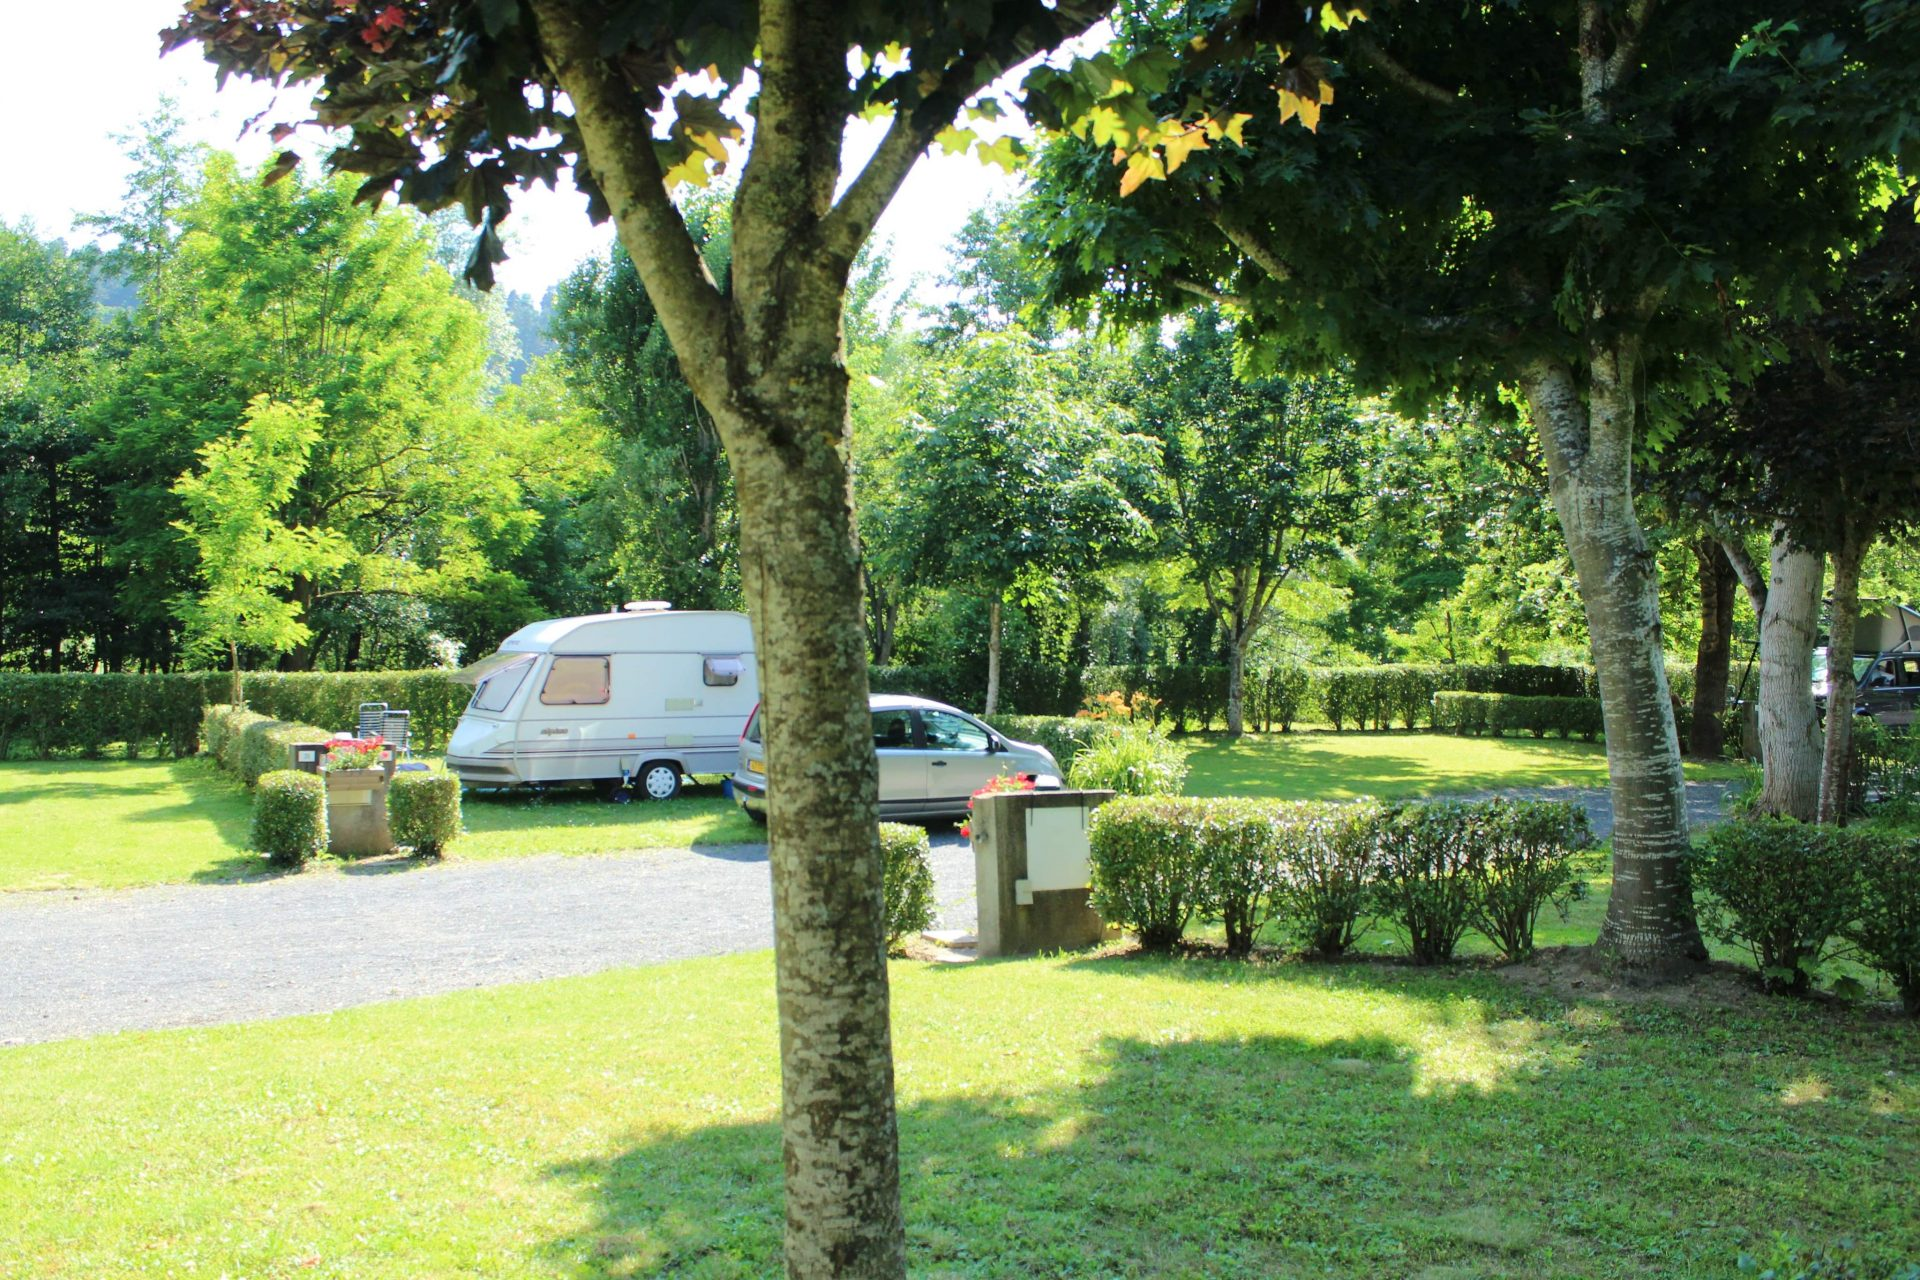 Emplacements pour camping